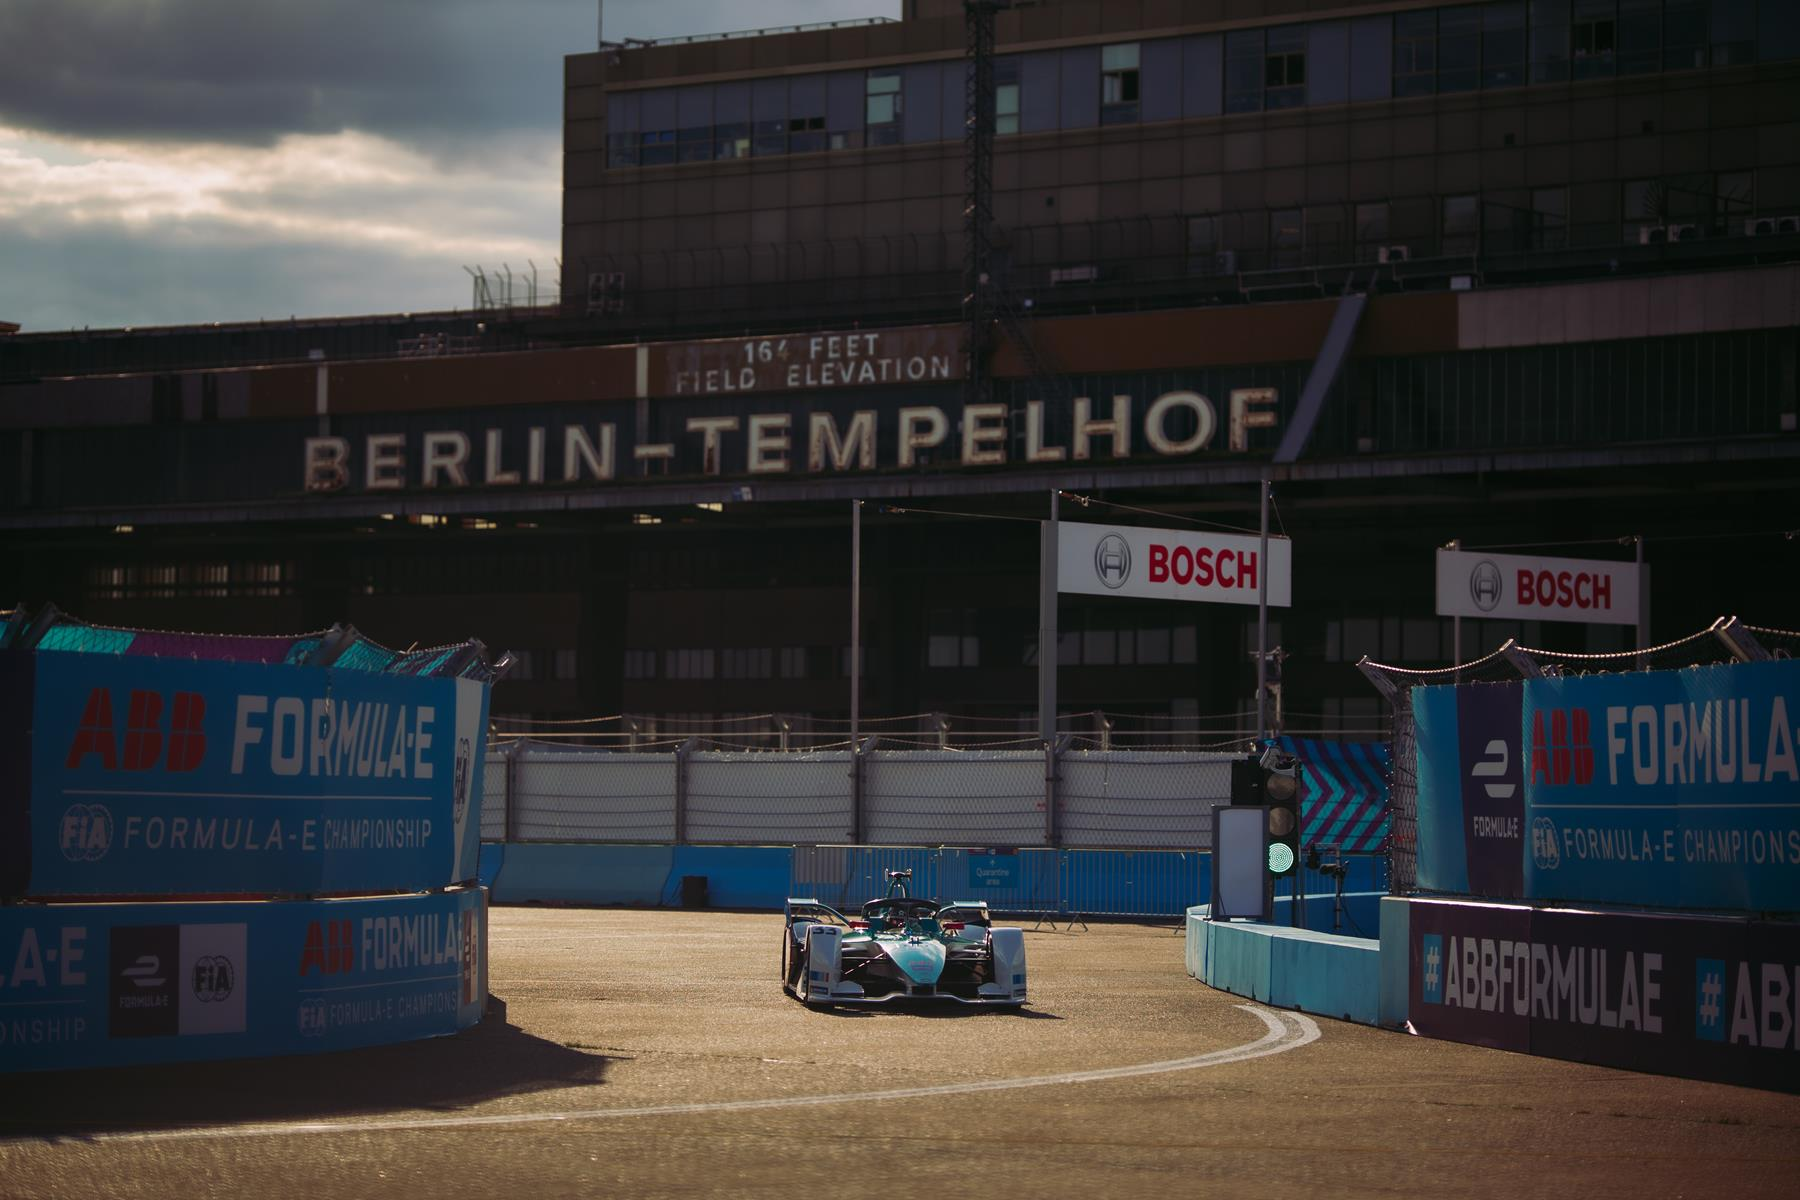 Daniel-Abt-Nio-333-FE-Team-Berlin-Coming-out-of-the-pits-Tempelhof-Signature-background